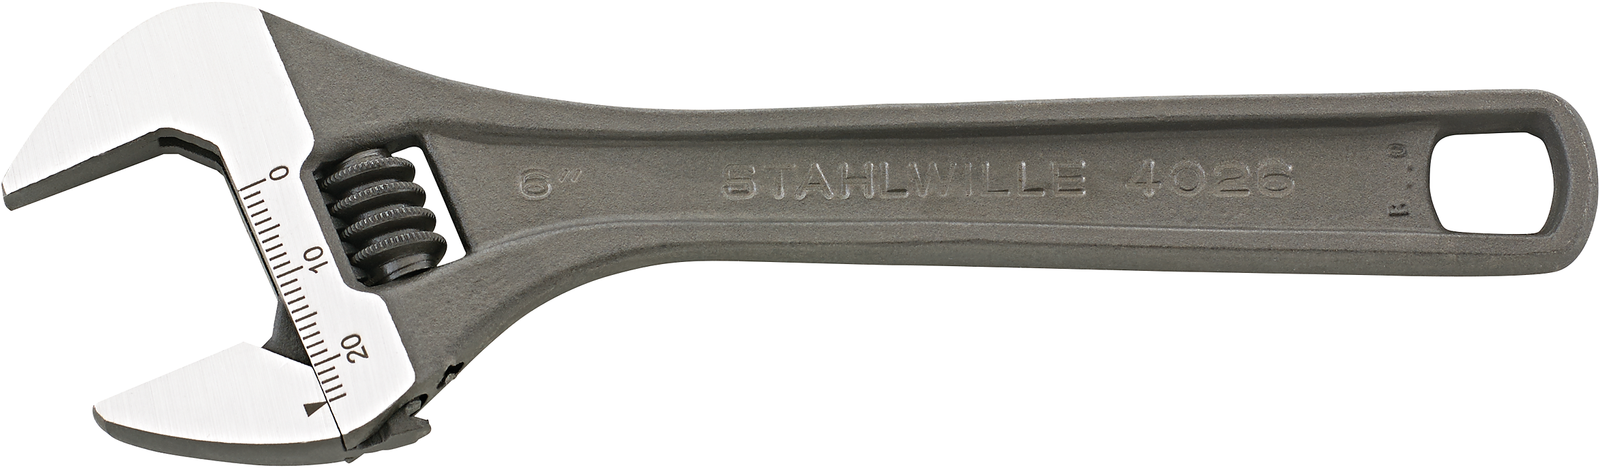 Single-end spanners, adjustable